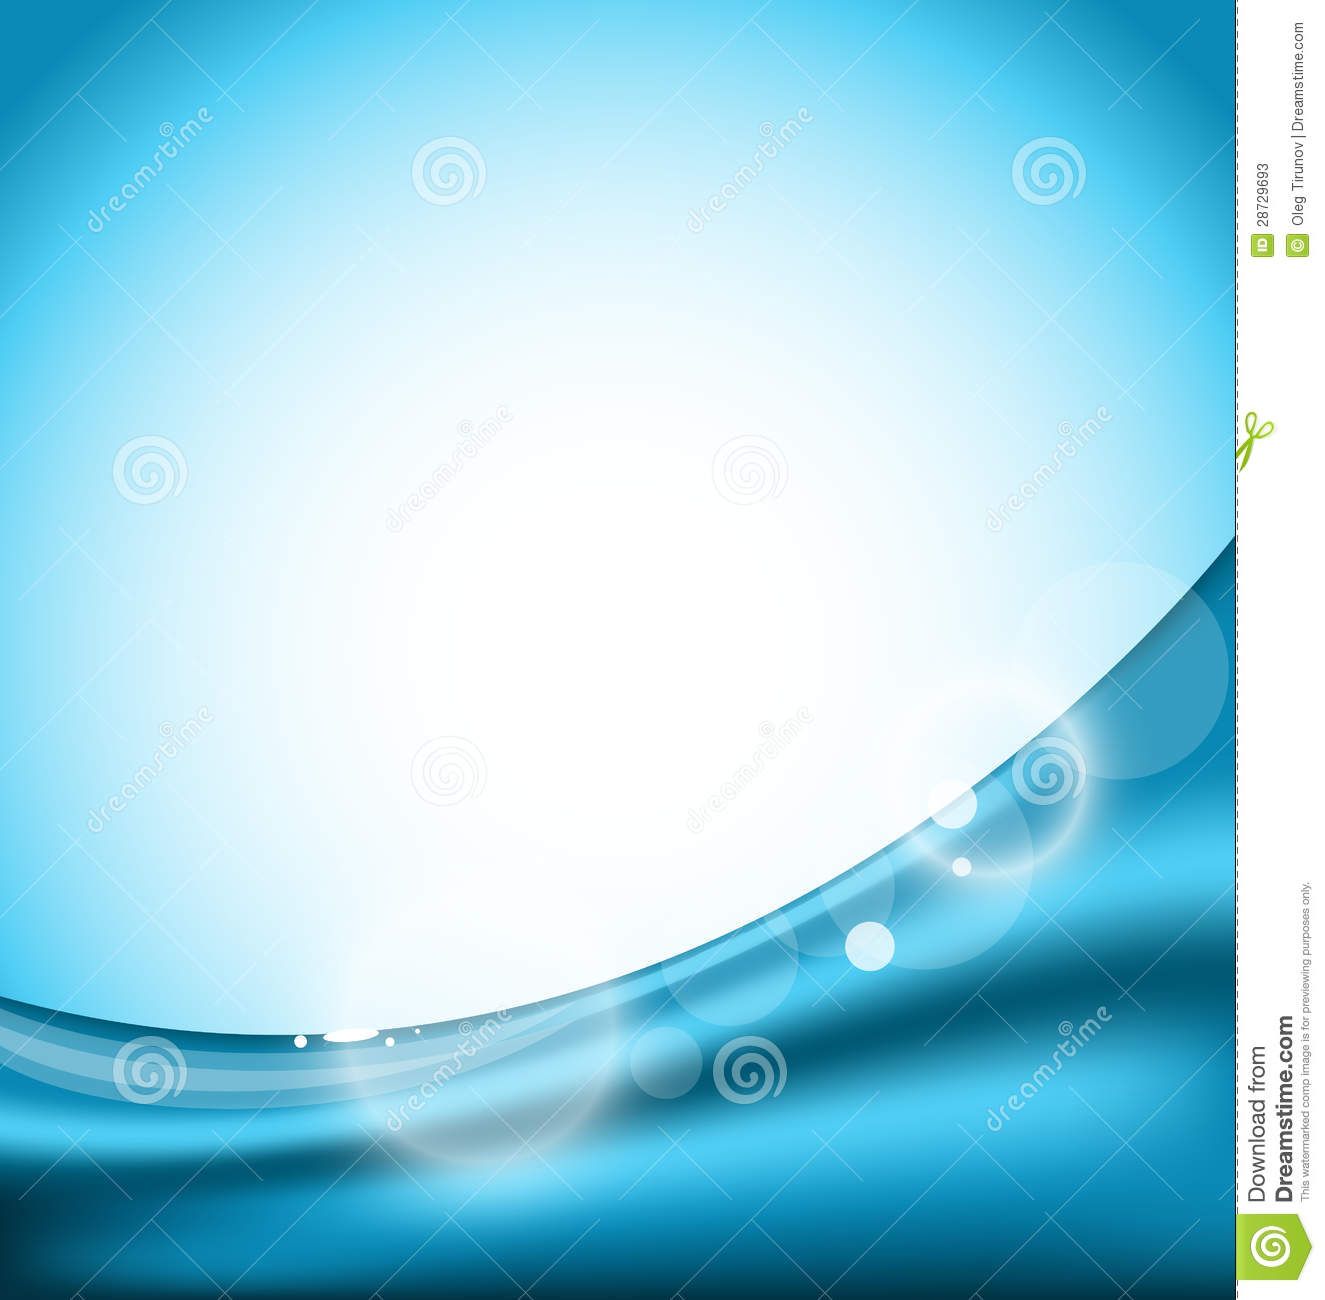 abstract blue background, design template stock vector